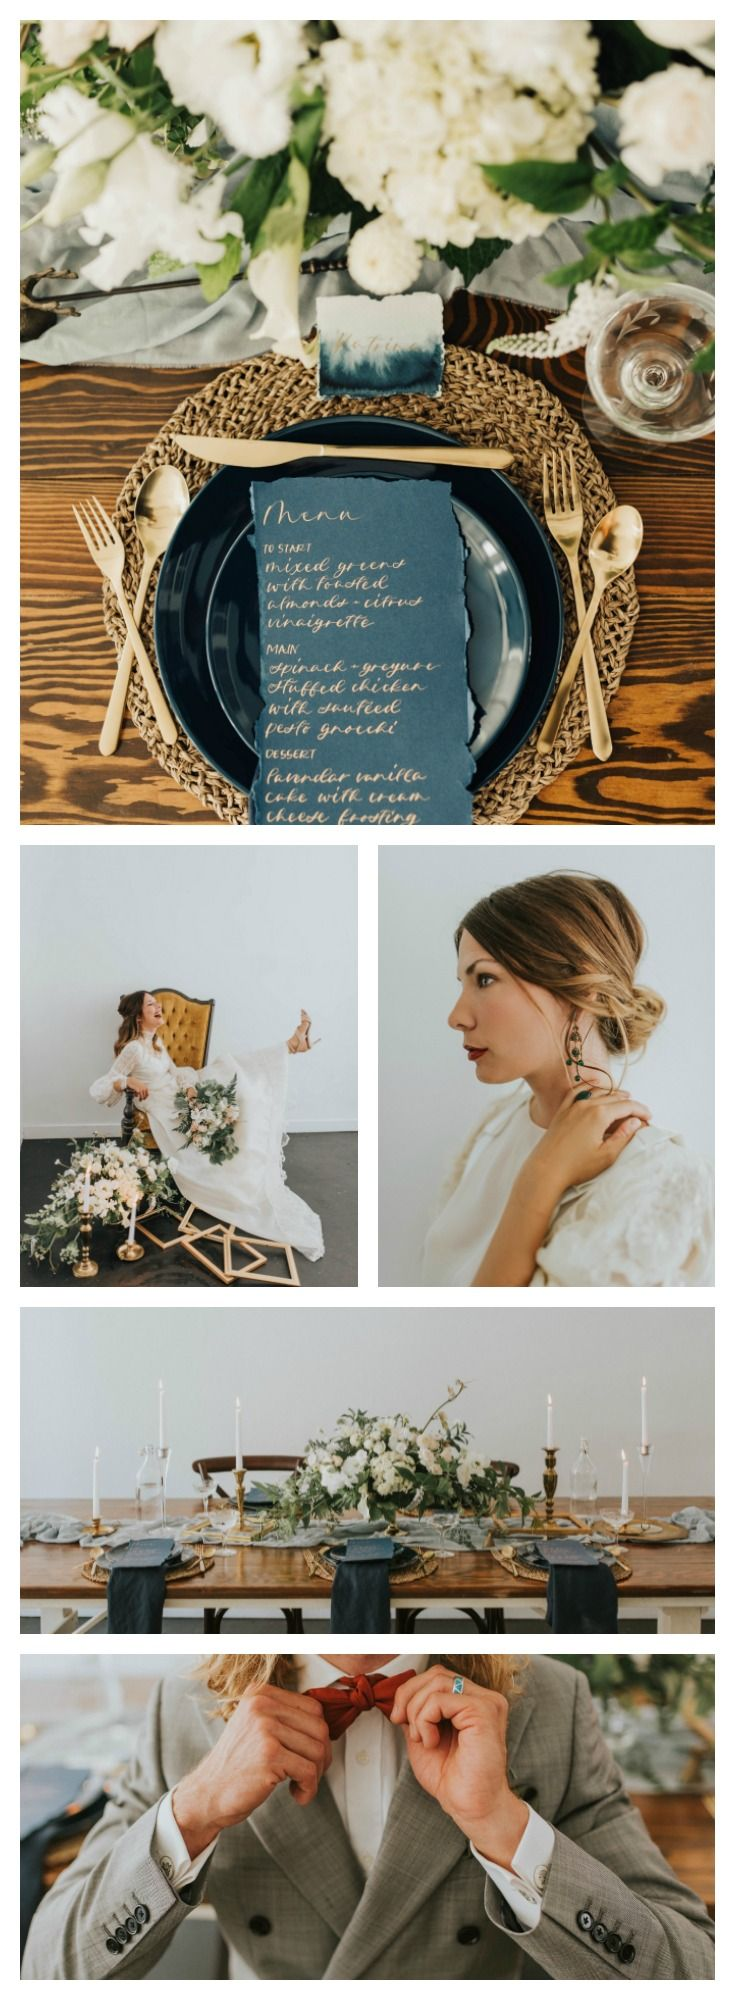 Navy and Gold Vintage Detailed Wedding Inspiration   #vintagewedding #navyandgold #wedding #weddinginspiration #weddingdecor #weddingideas #tabletop #inspirationshoot #fallwedding #bluewedding #navywedding